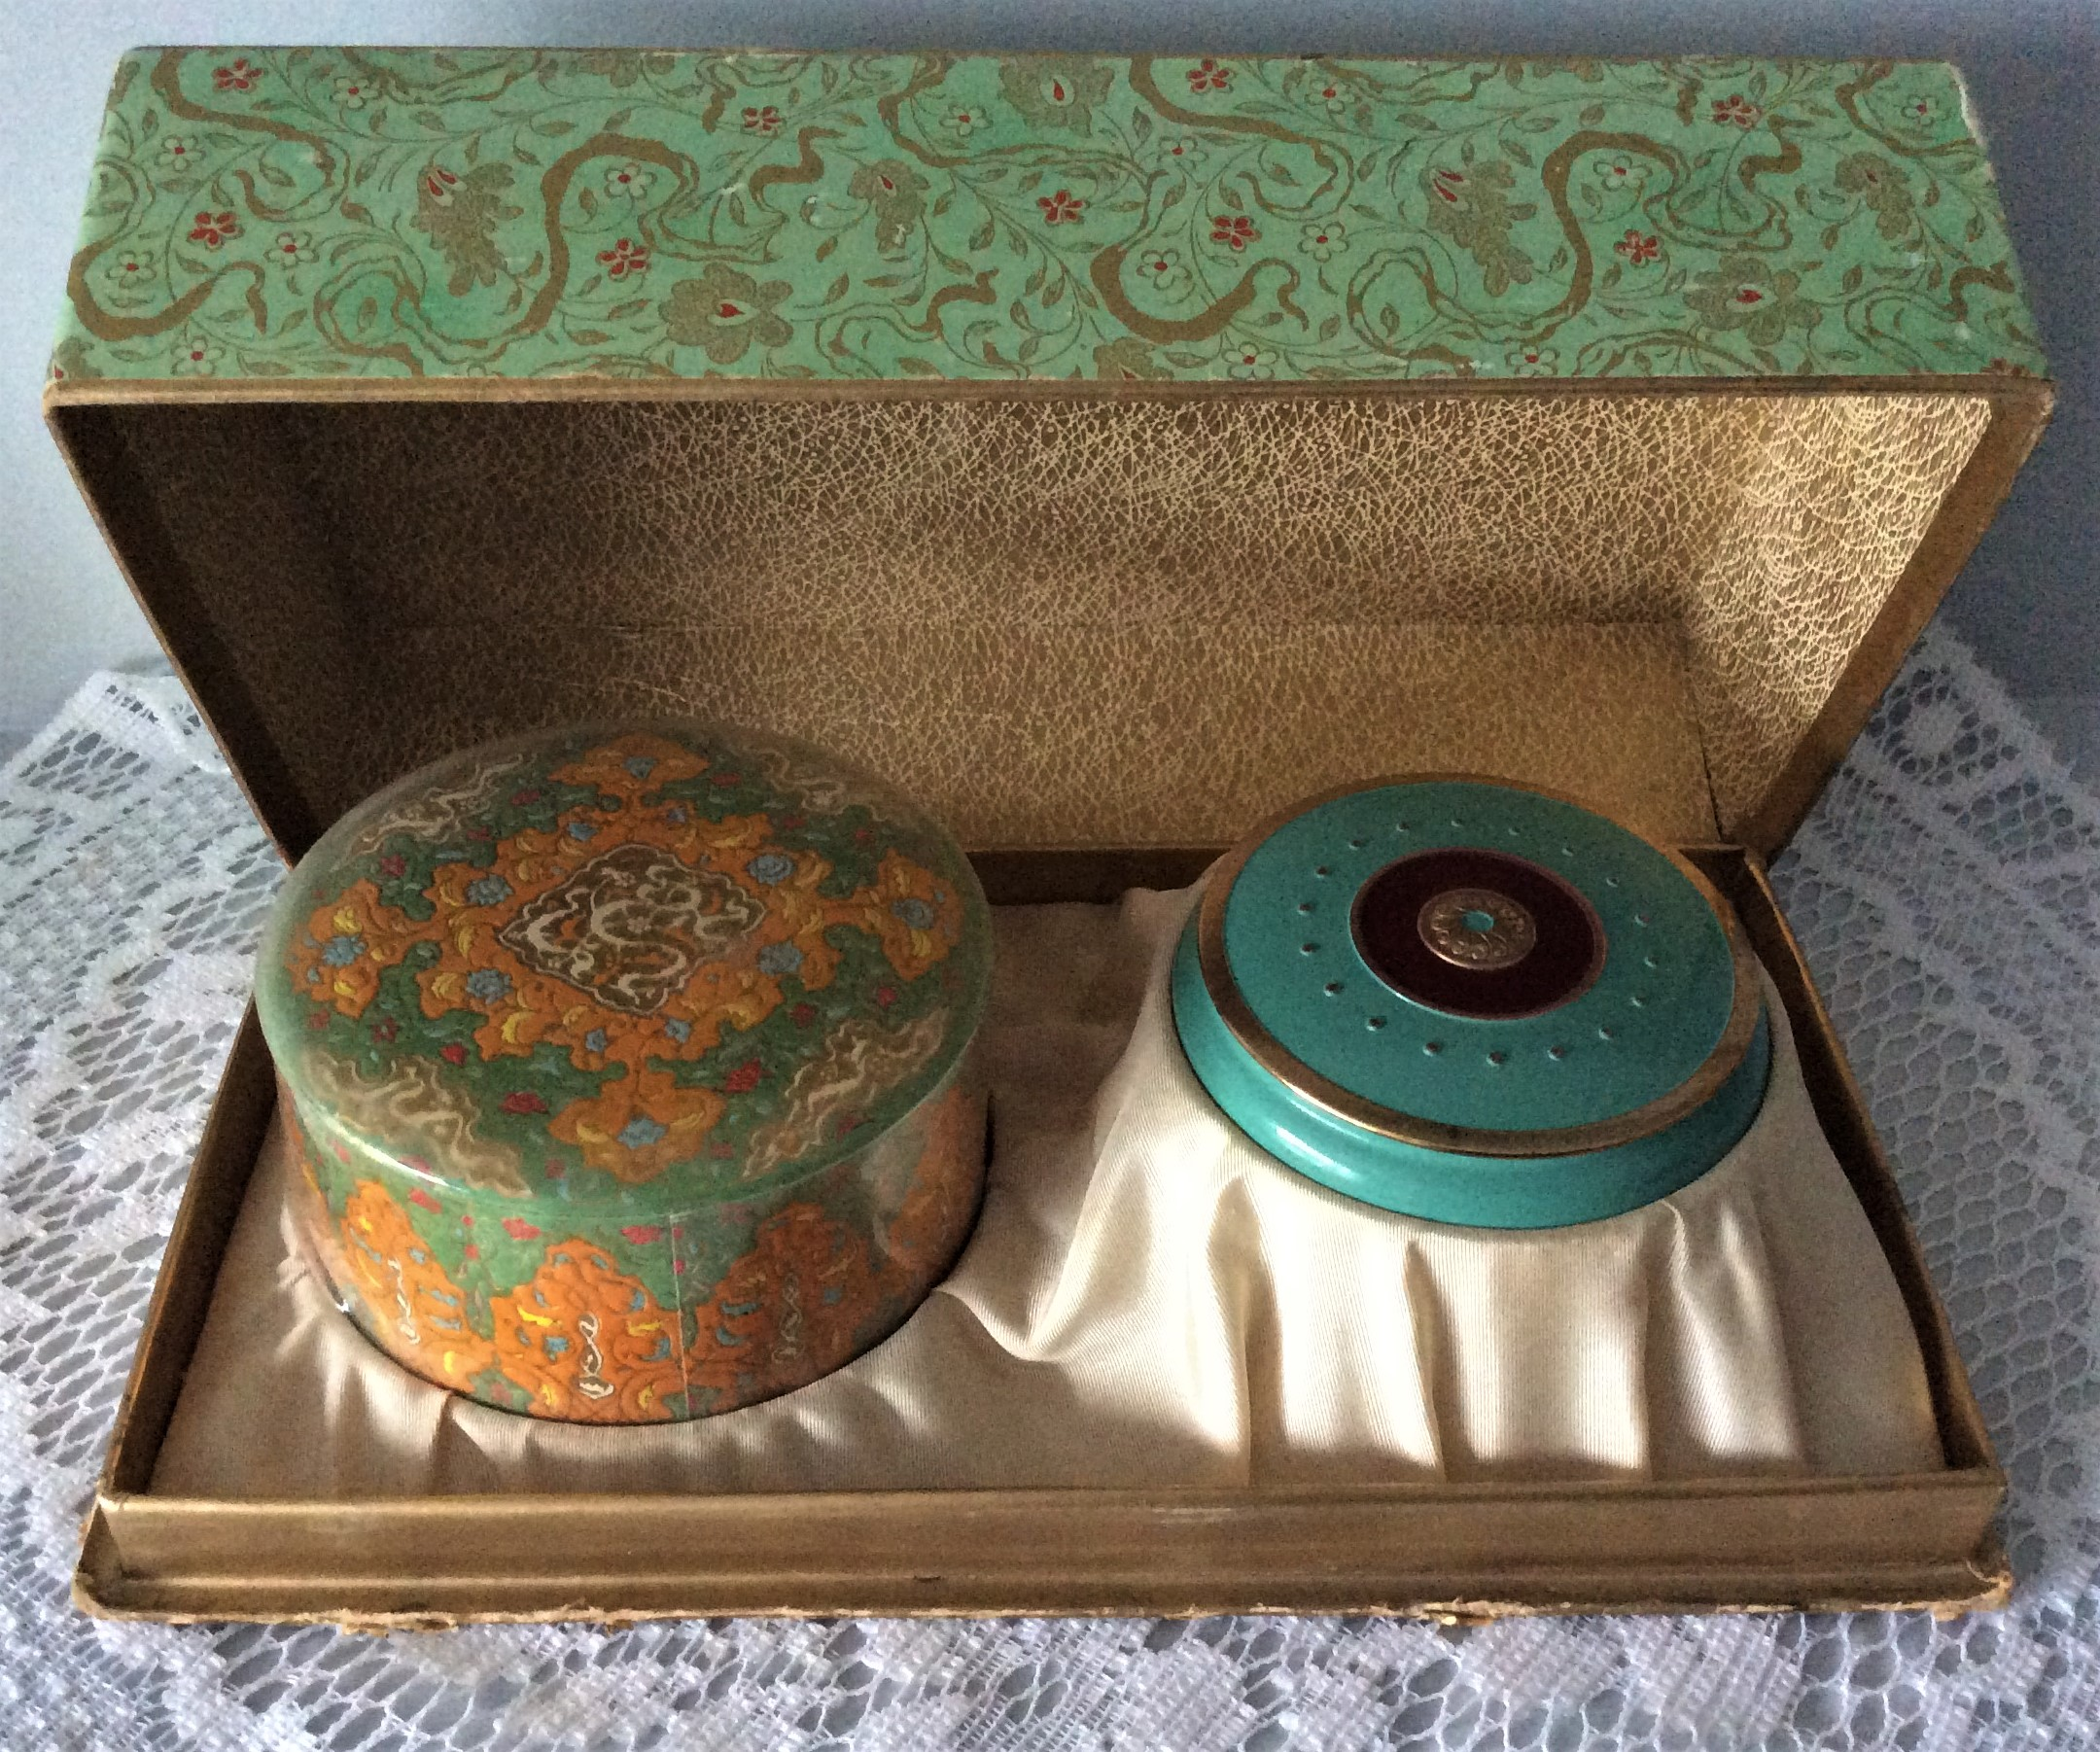 Rare Vintage c.40s COTY New York / Paris AIR SPUN Emeraude Soleil D'or Powder Box and Compact with sealed contents.